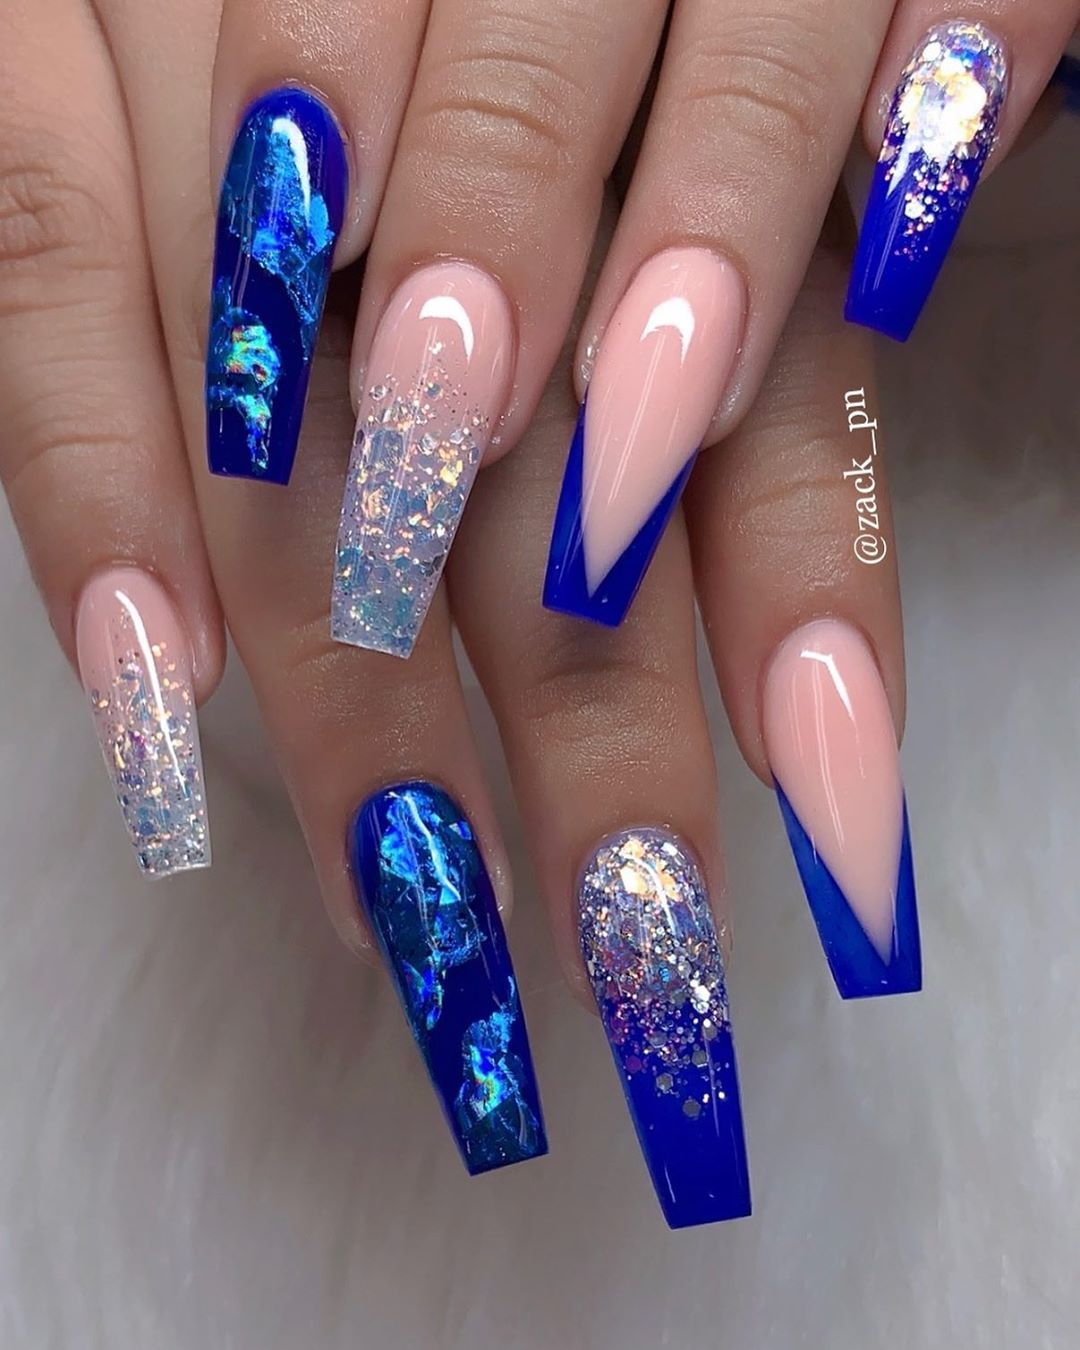 Zack Pn On Instagram Summer Fire Nailpro Nailpolish Naildesigns Nails Coffinnails Summer Acrylic Nails Blue Acrylic Nails Coffin Nails Designs